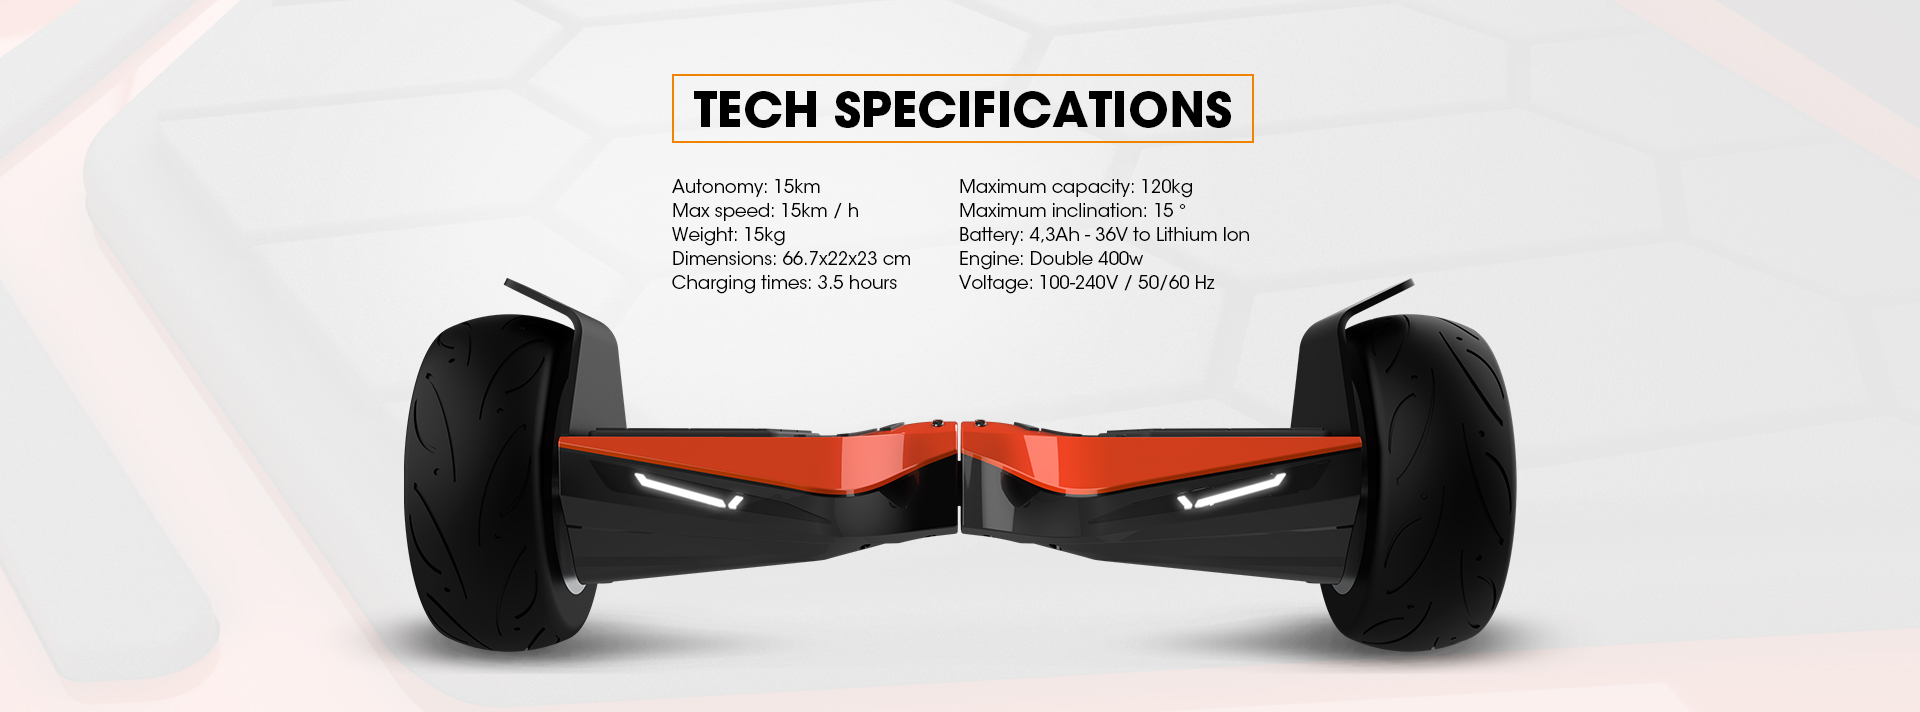 Red Lamborghini Hoverboard 8.5 inch Offical Automobili Lamborghini Authorized Hoverboard - Specifications